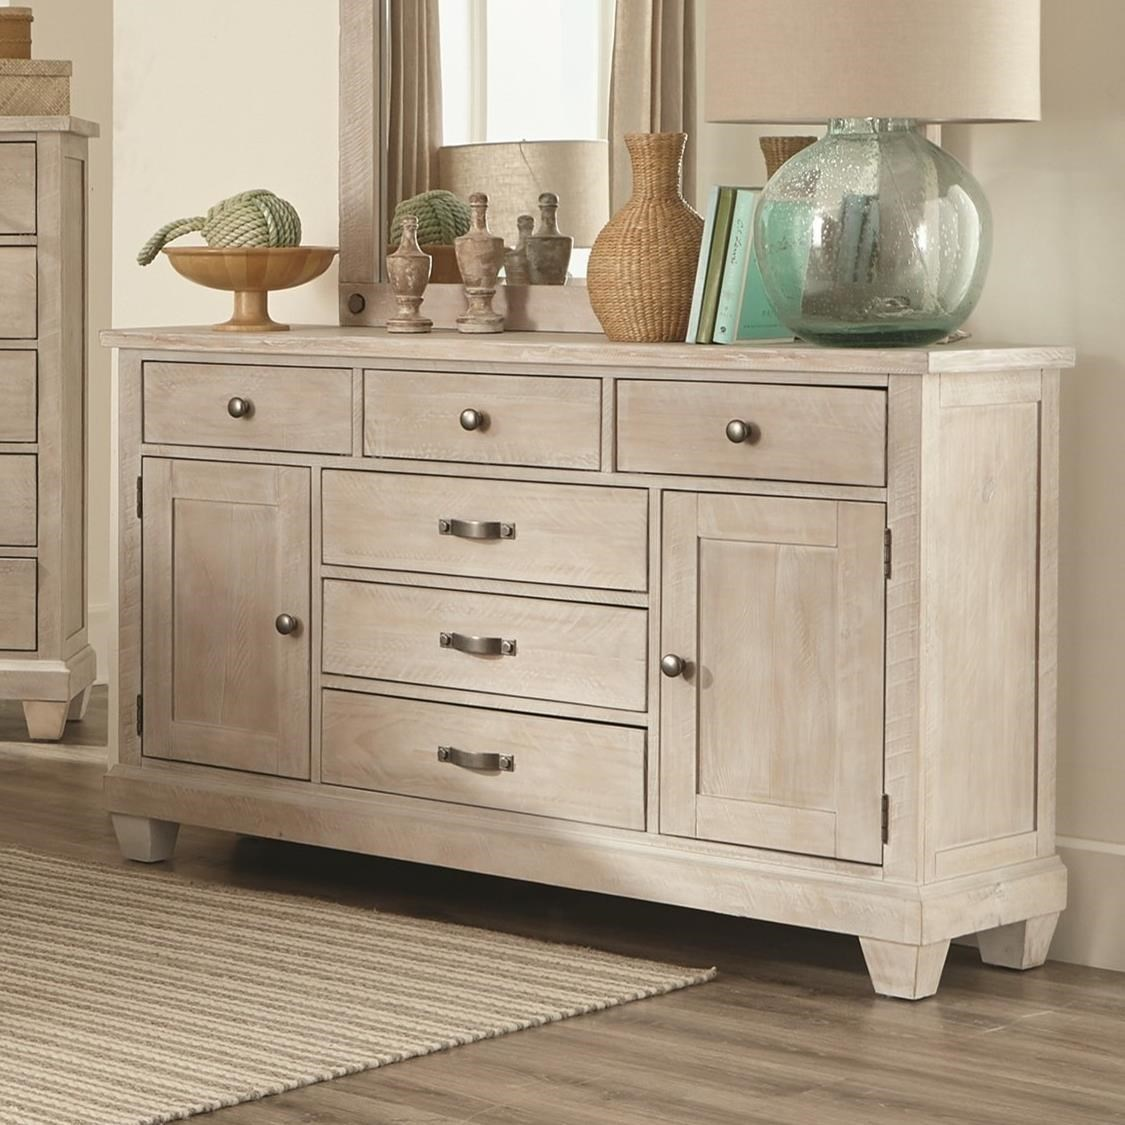 C7131W Dresser  by Lifestyle at Beck's Furniture